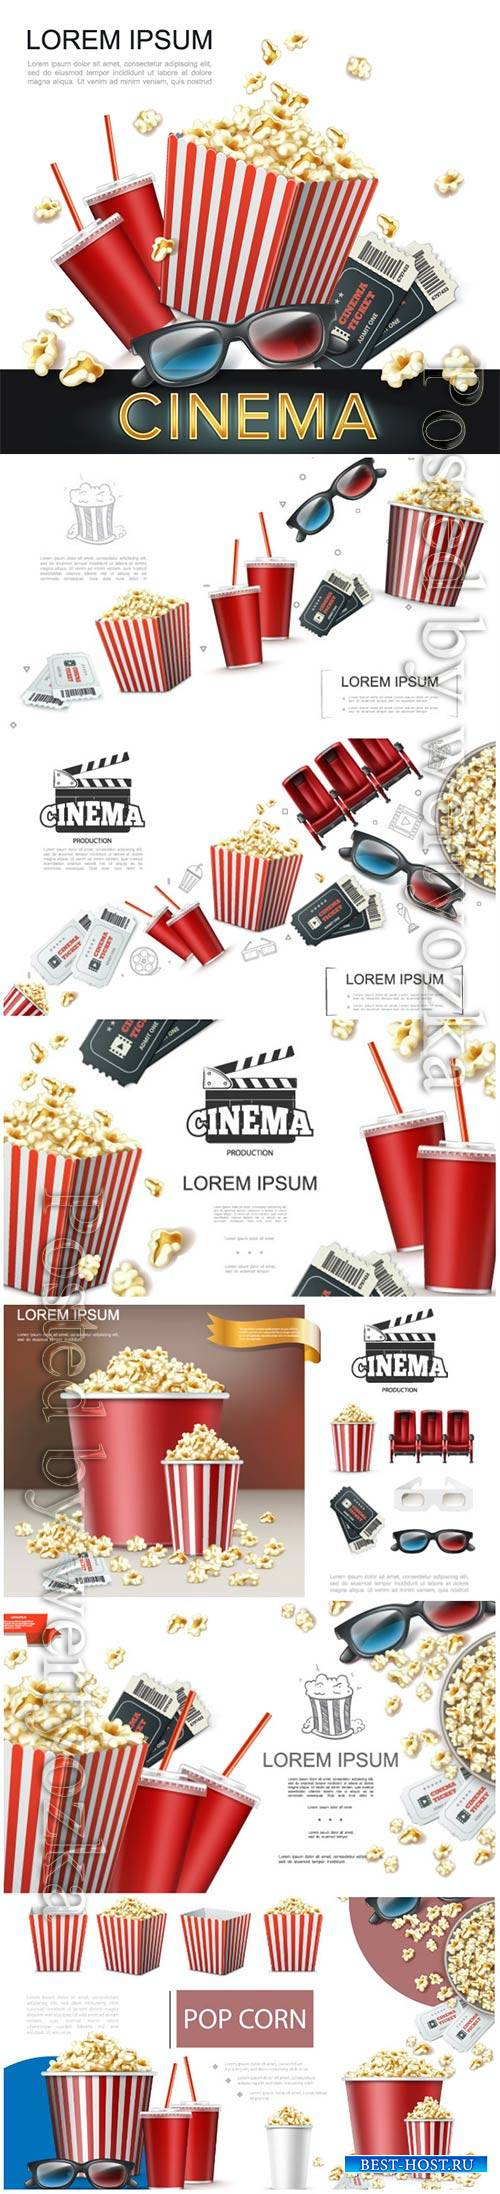 Realistic cinema elements vector background